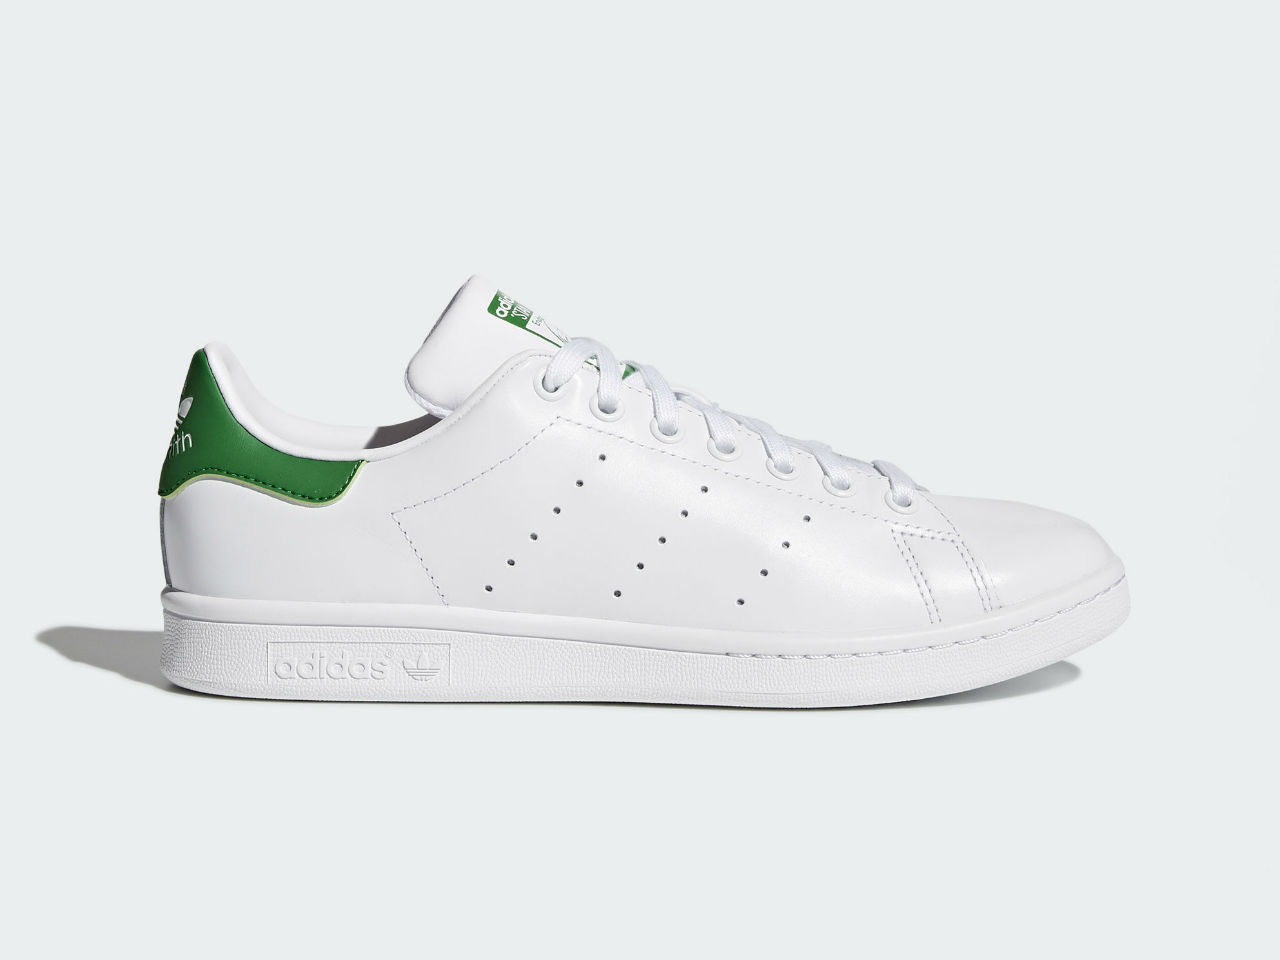 03e48f161a32 An Adidas Stan Smith sneaker  We show you tried and tested ways to clean  white Stan Smith shoe.